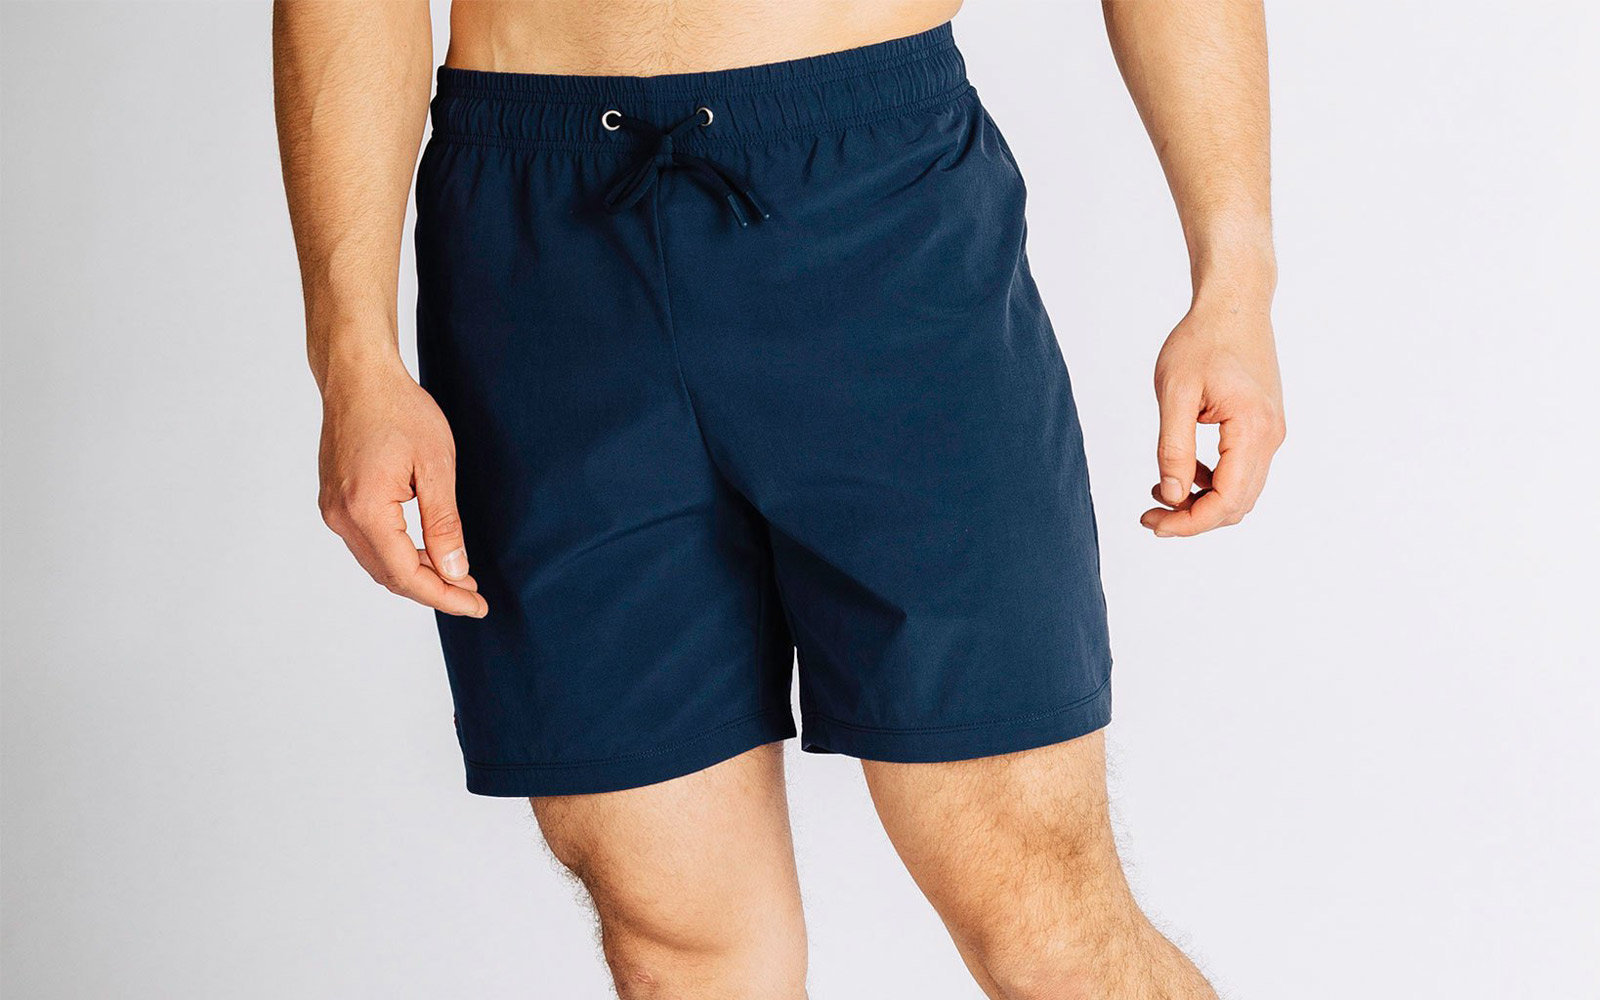 rhone mens swim trunks